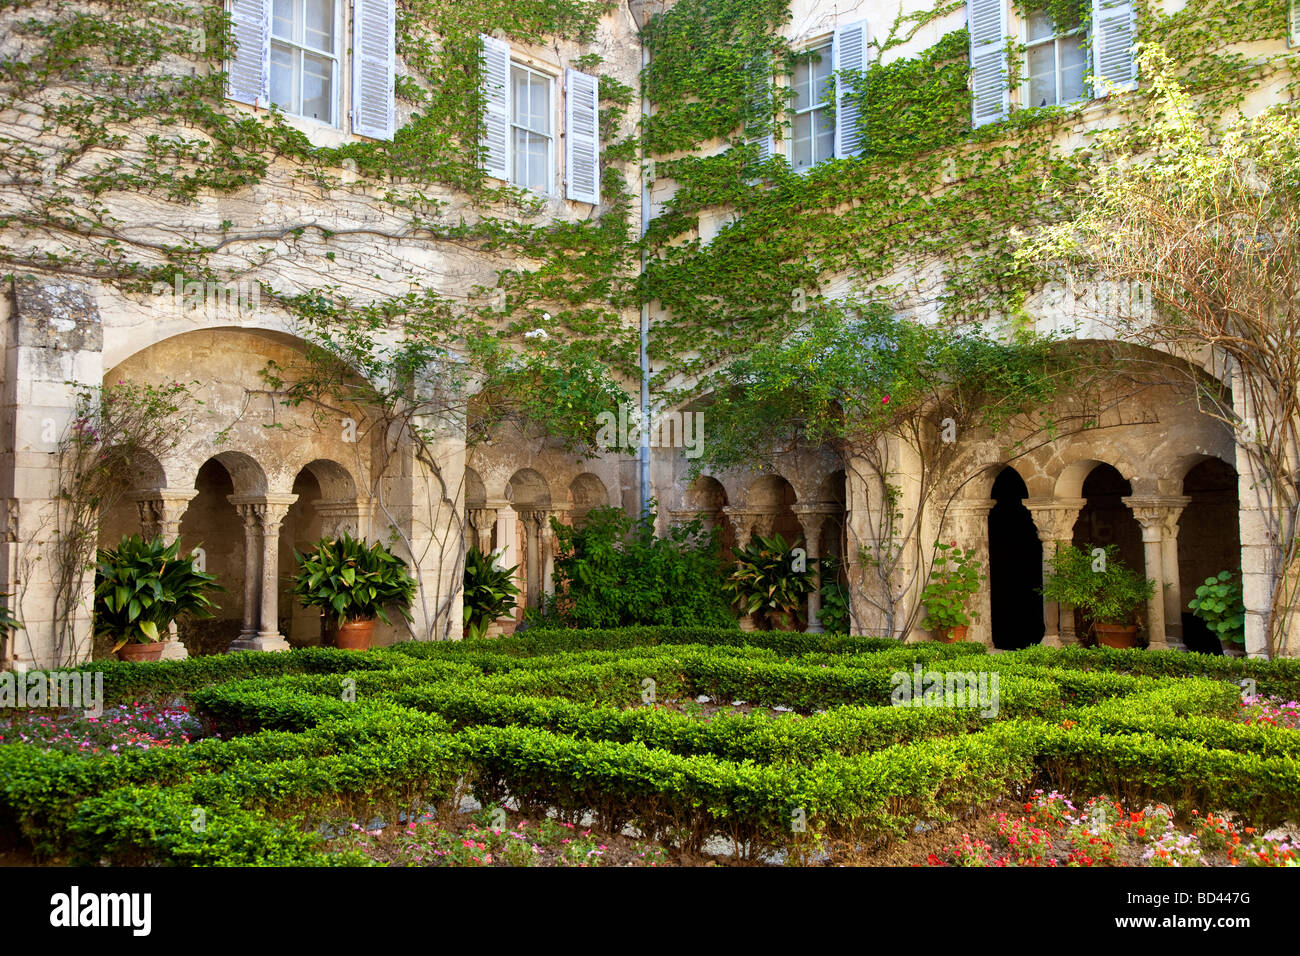 St Remy Van Gogh Asylum St Remy De Provence France Stock Photo